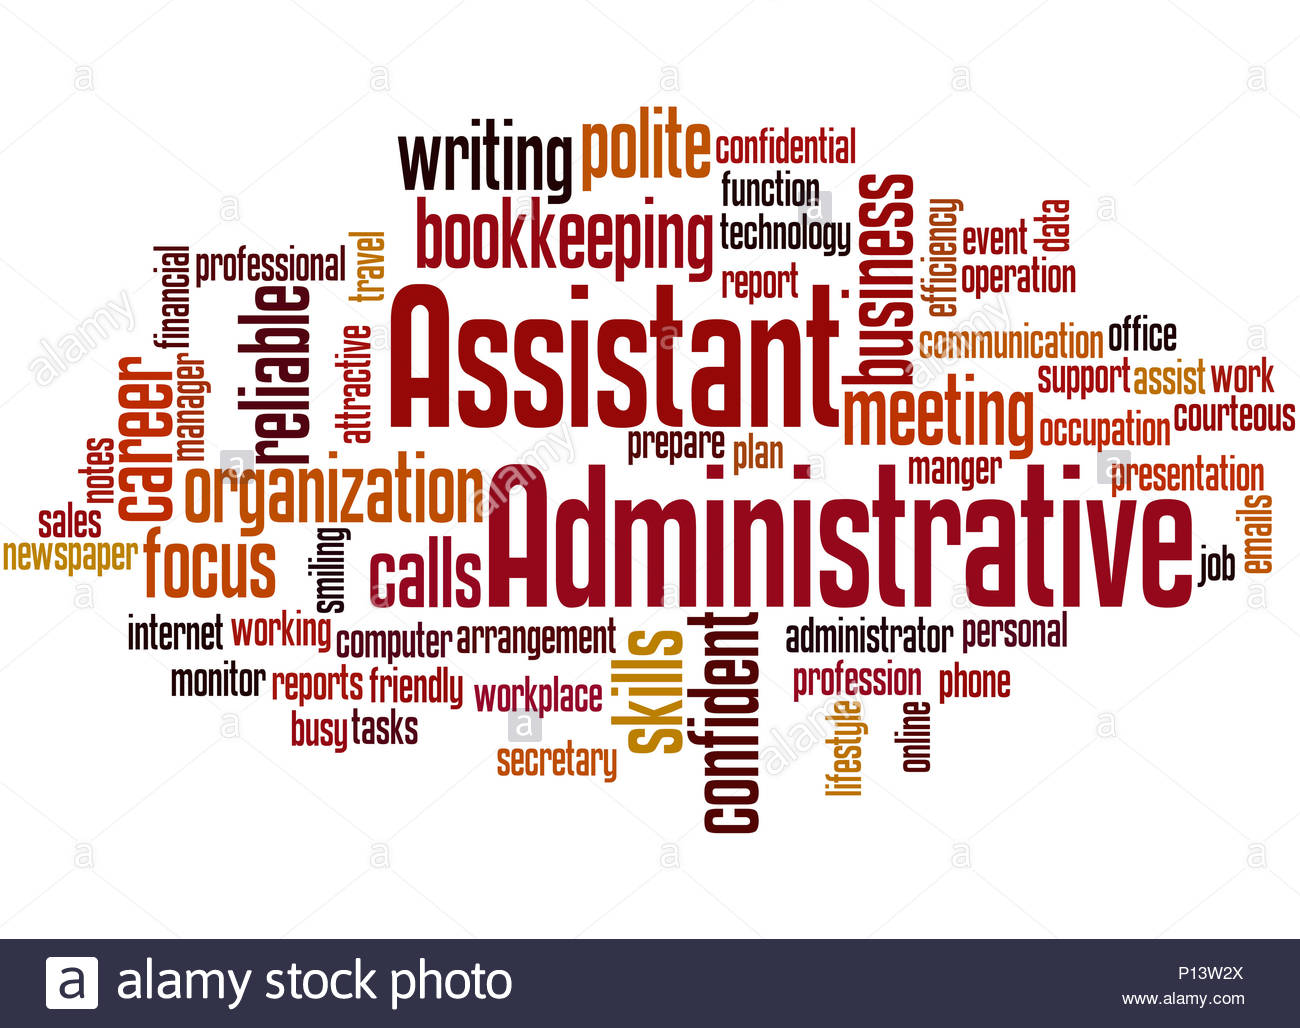 Administrative Assistant word cloud concept on white background 1300x1028